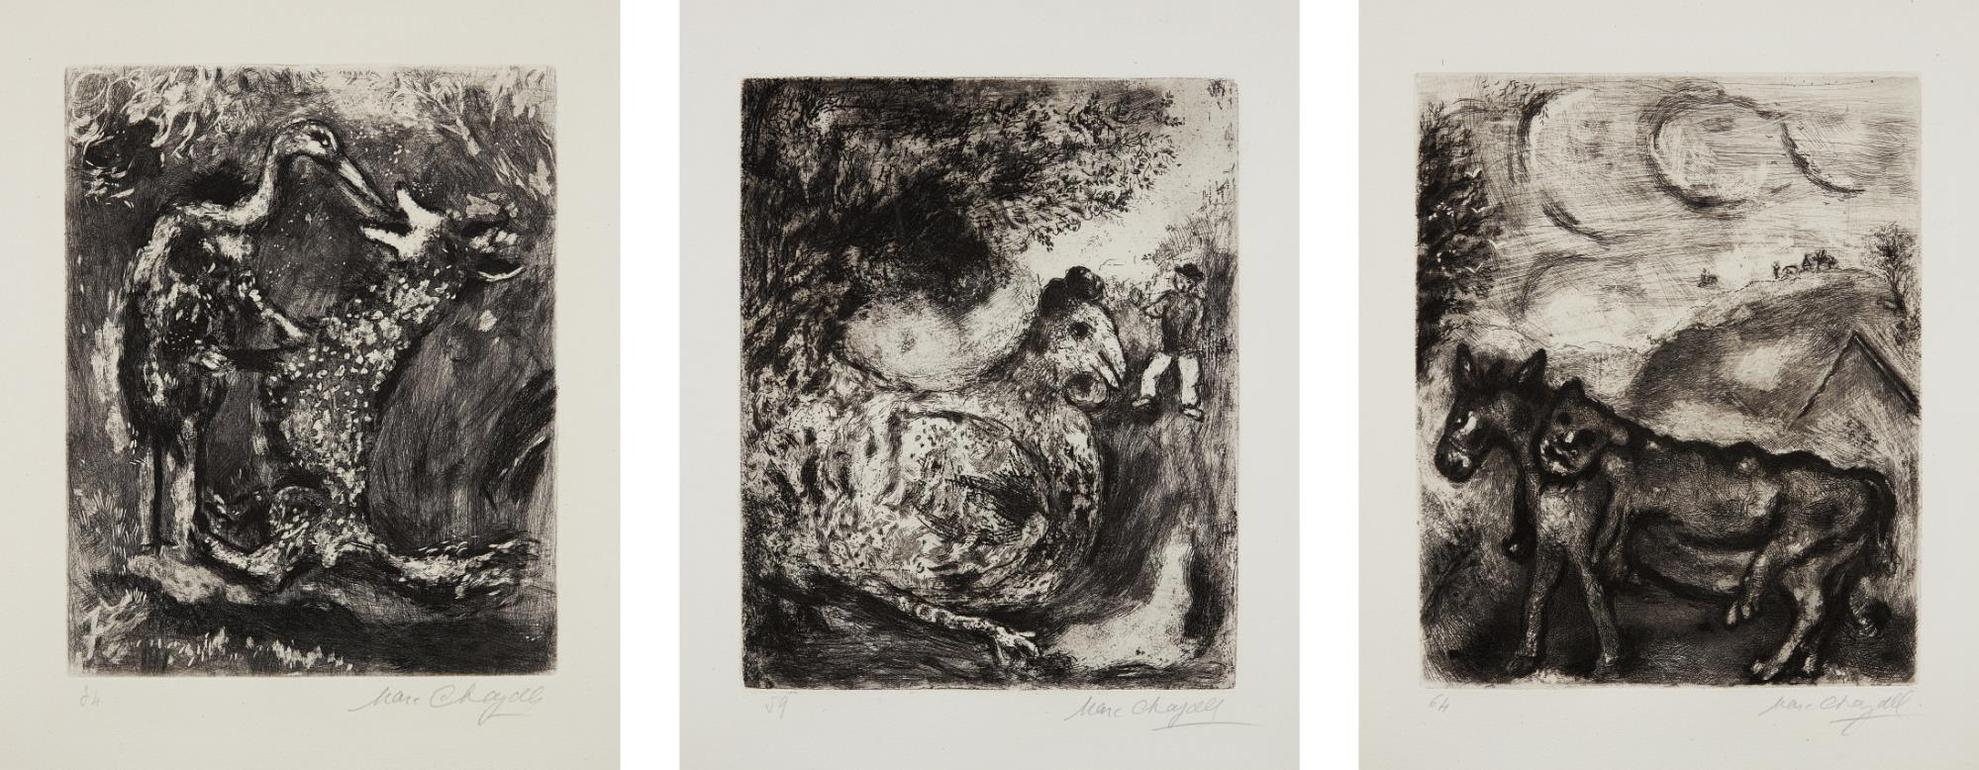 Marc Chagall-The Wolf And The Stork, Plate 34; The Hen That Laid Golden Eggs, Plate 59; And The Ass In The Lion'S Skin, Plate64, From Fables De La Fontaine-1930